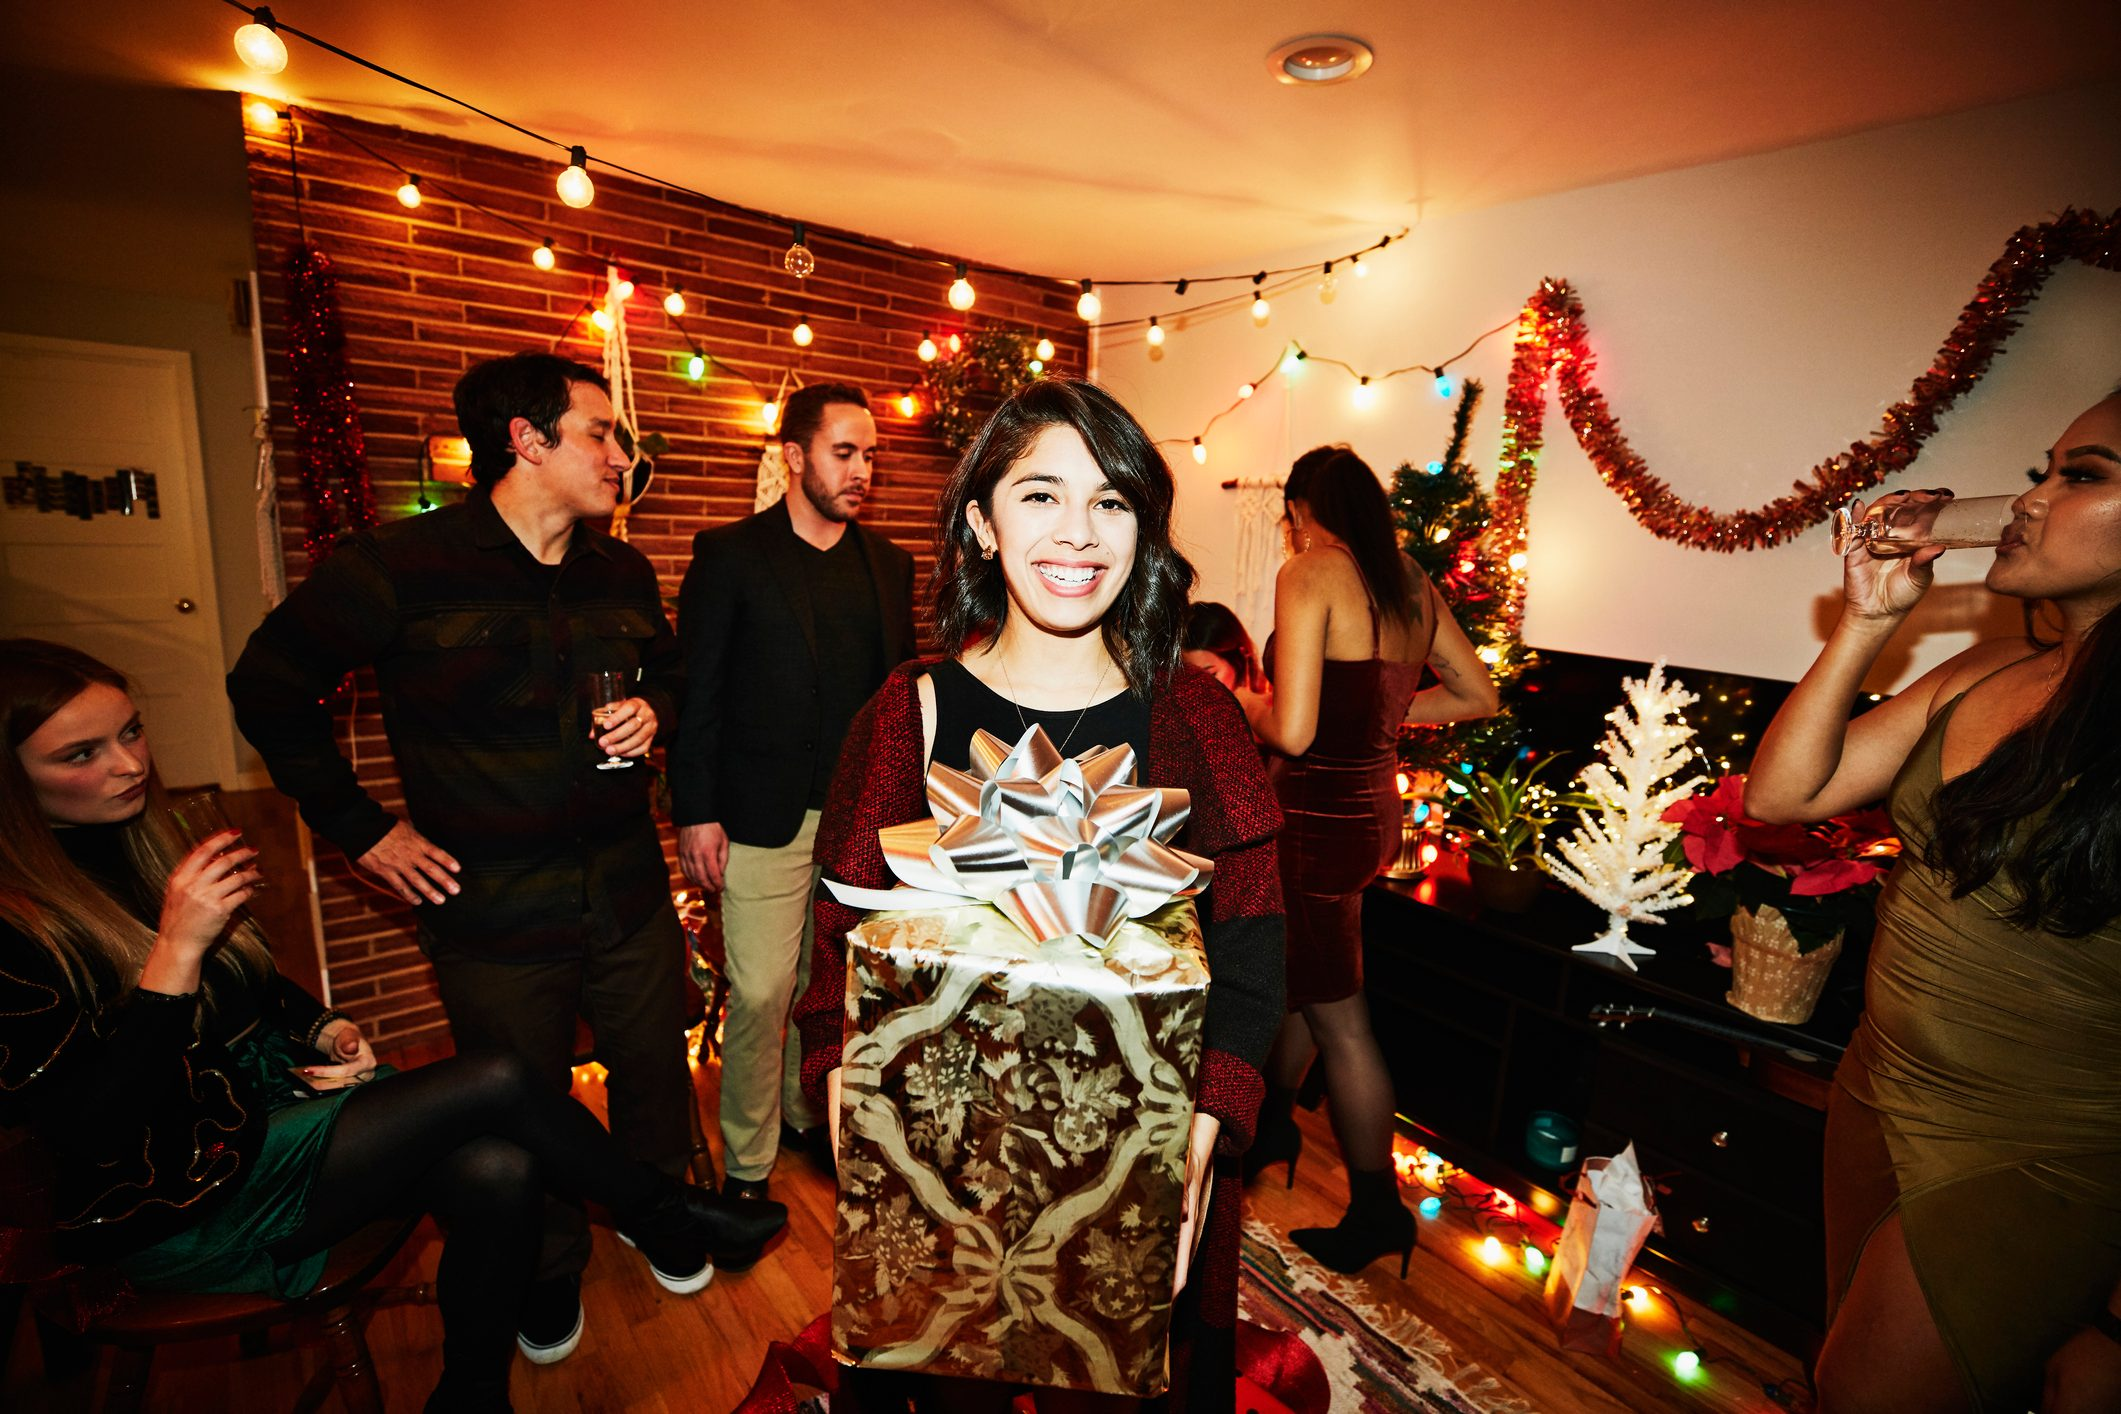 Smiling woman holding present during holiday party with friends in home